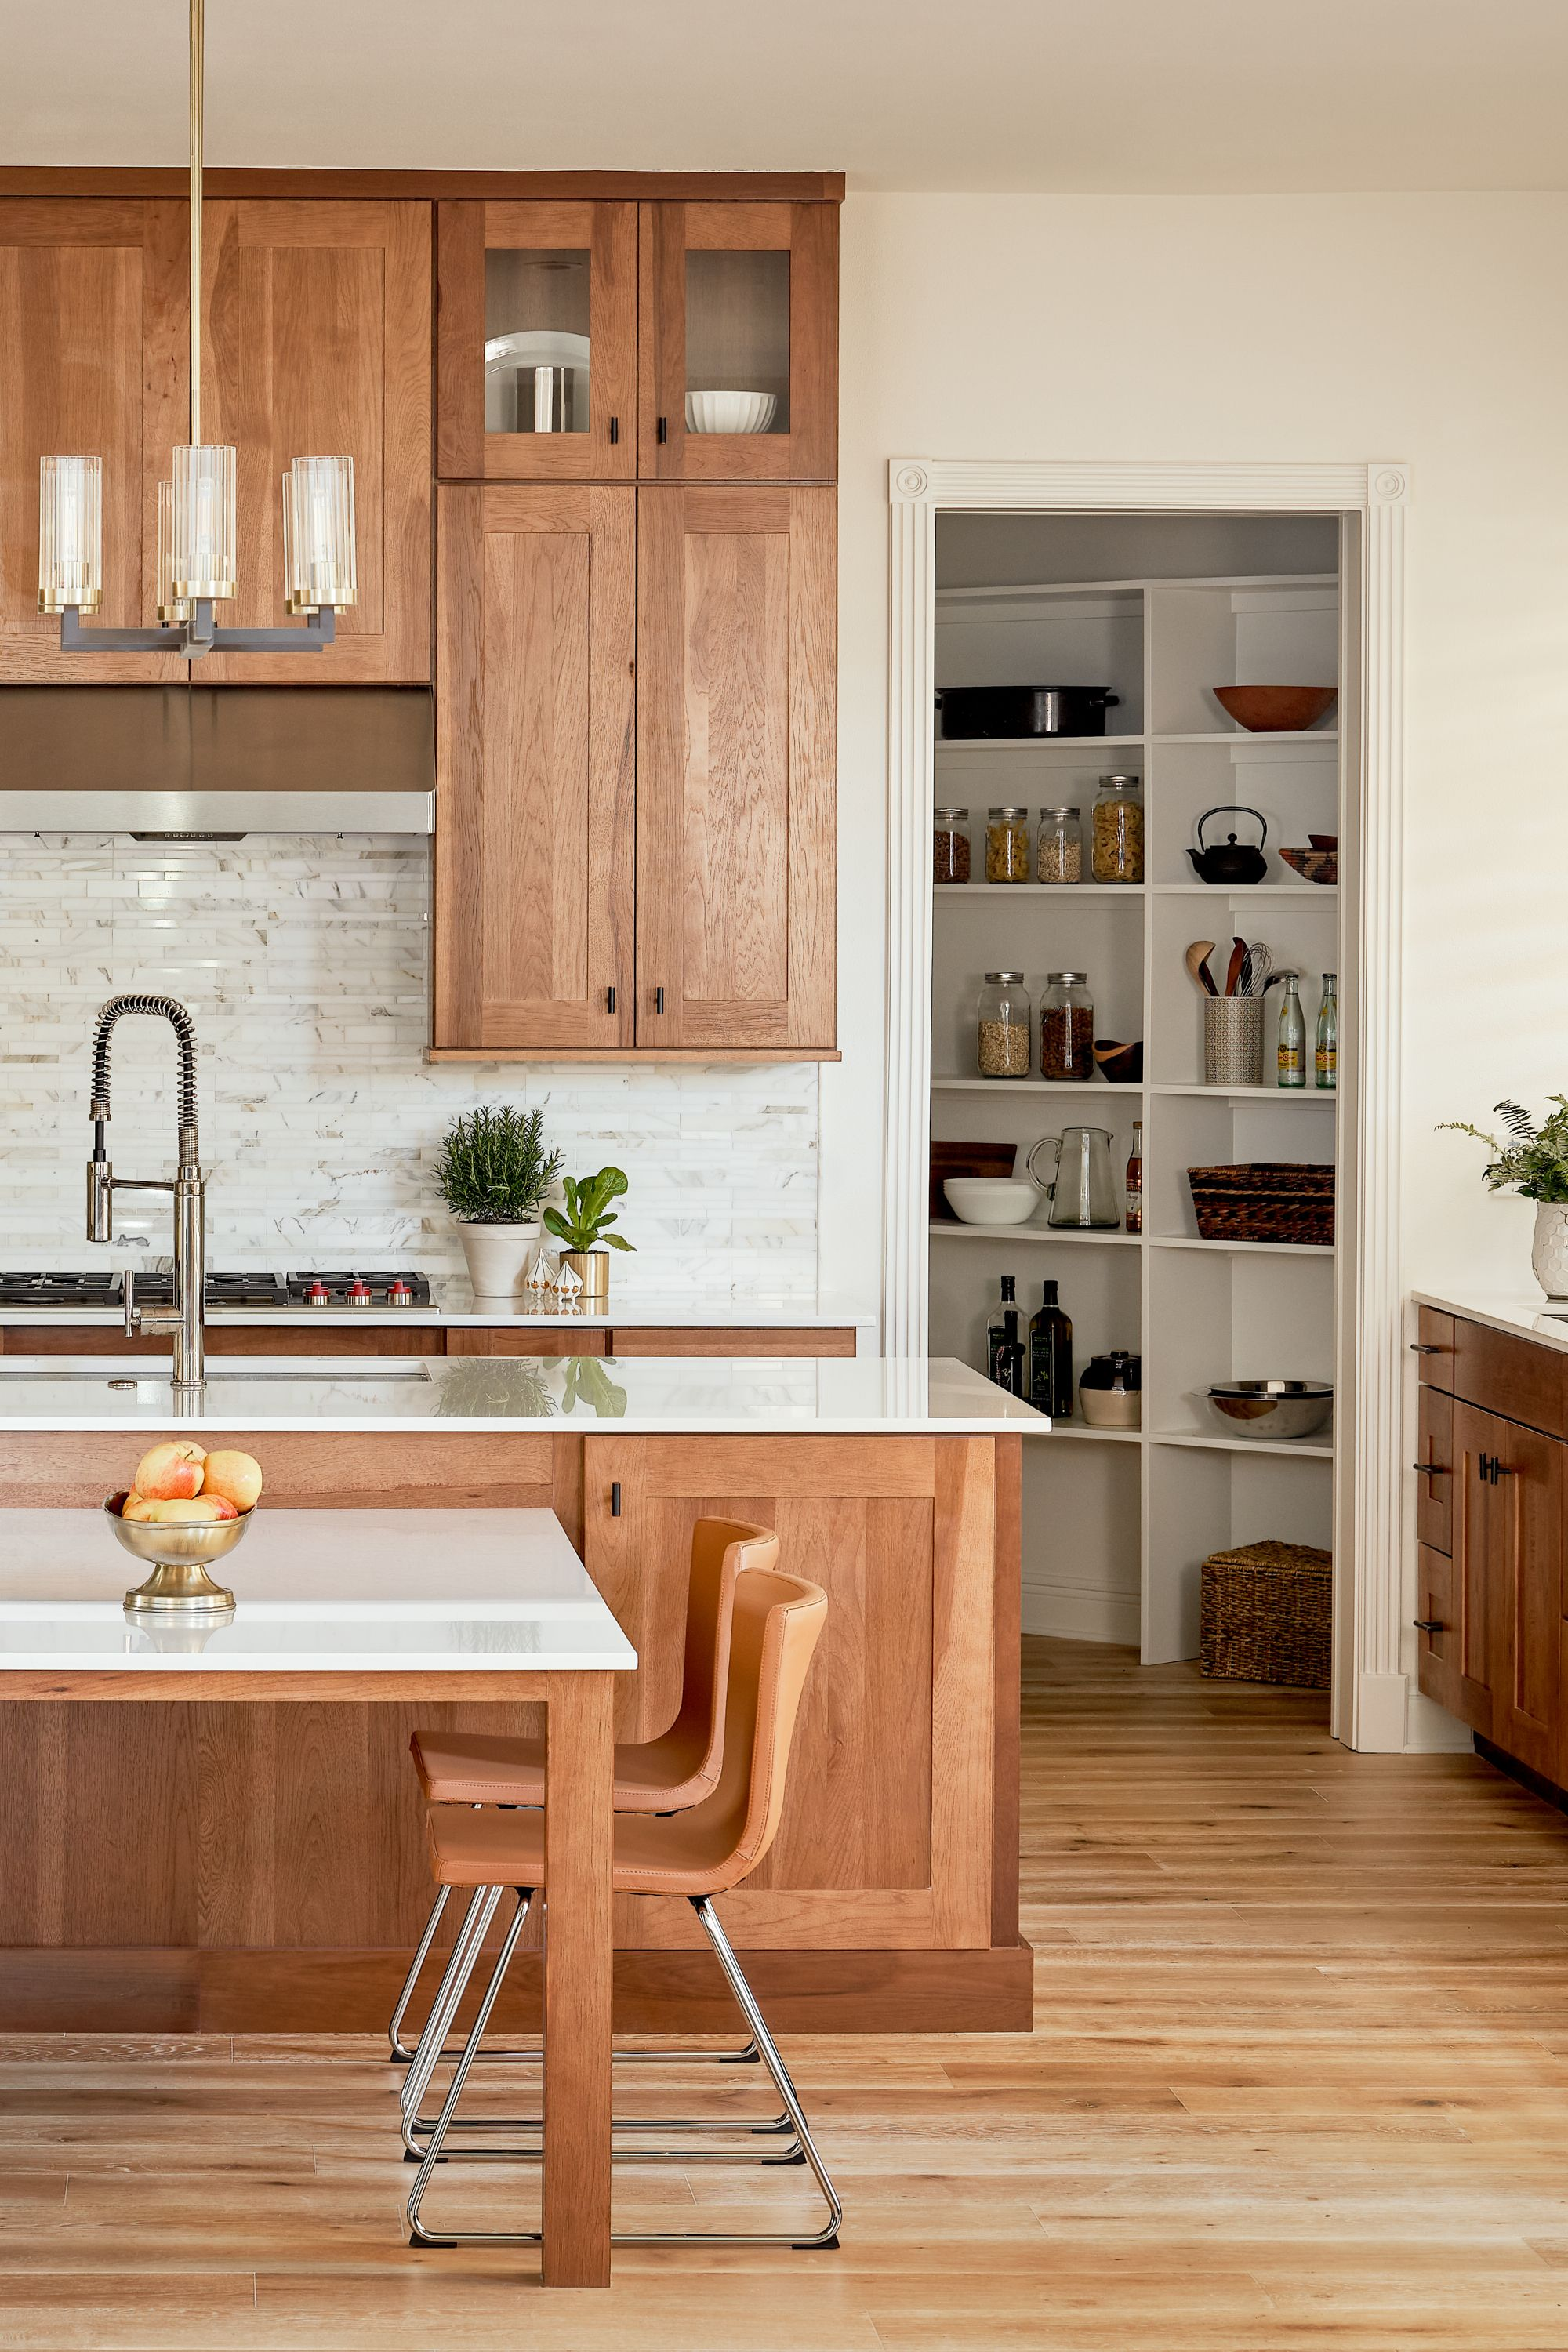 Kitchen Remodel Hickory Kitchen In 2020 Hickory Kitchen Maple Kitchen Cabinets Kitchen Cabinet Inspiration